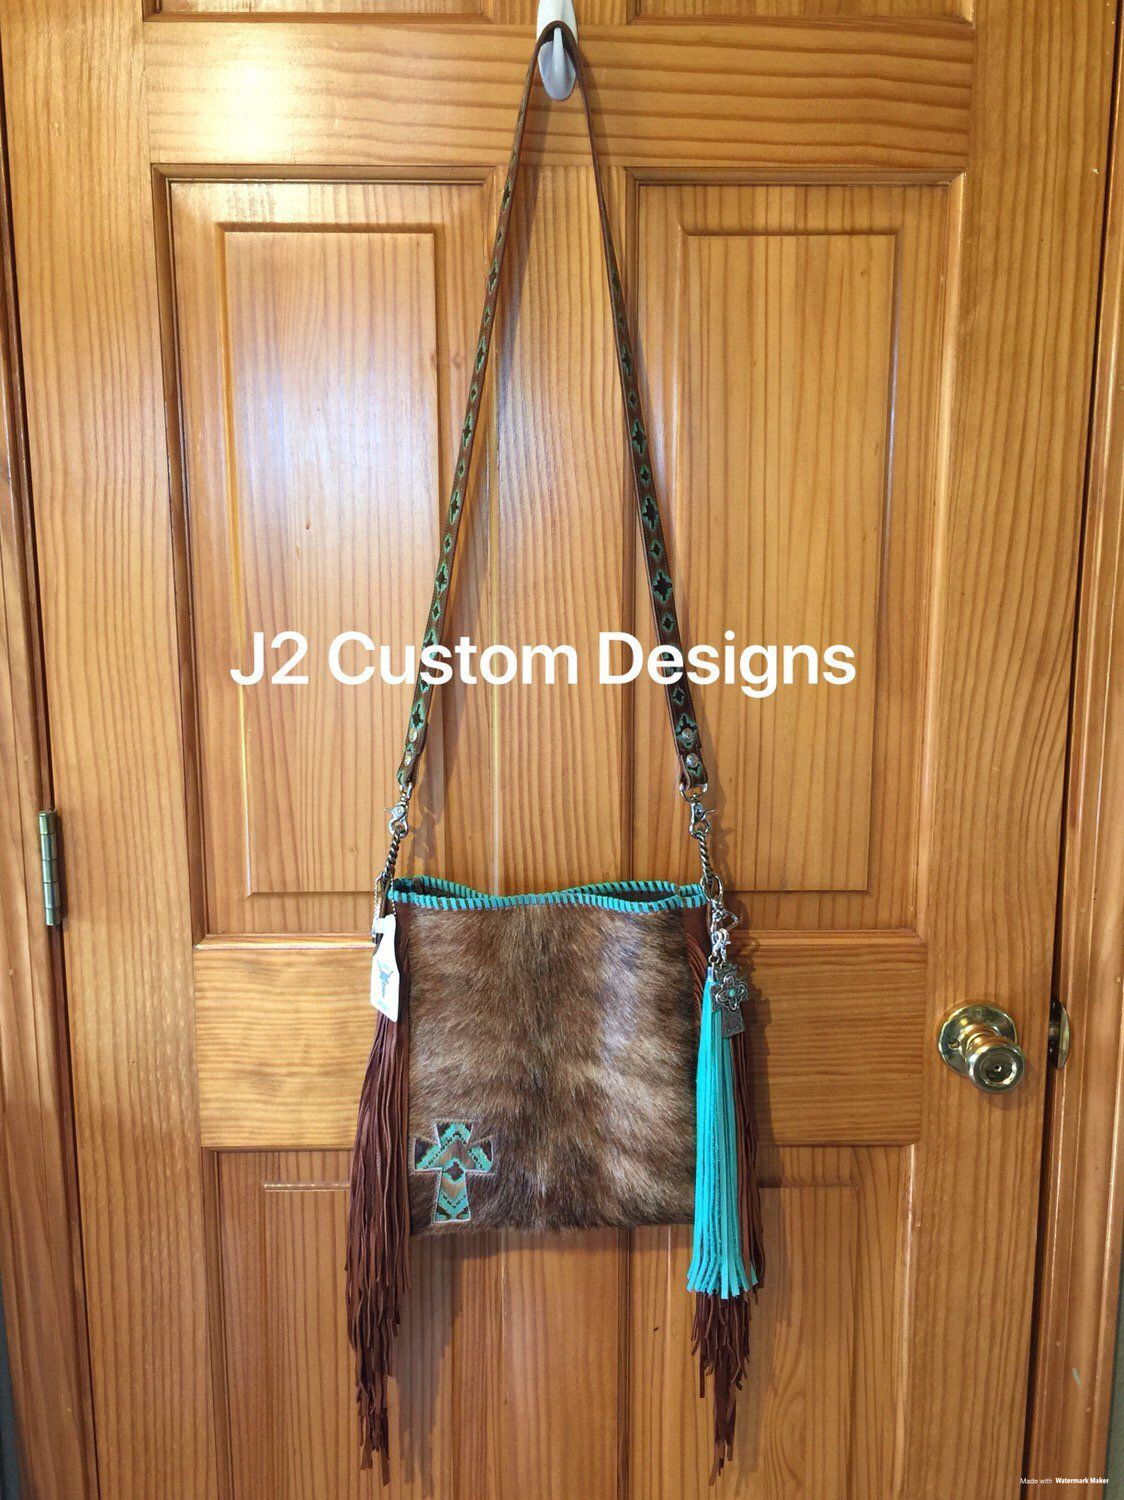 c30ad314a Crossbody Cowhide and Leather Fringe Purse with Free Shipping. Find this  Pin and more on J2 Custom Designs by Tammye Johnson. Excited to share this  item ...